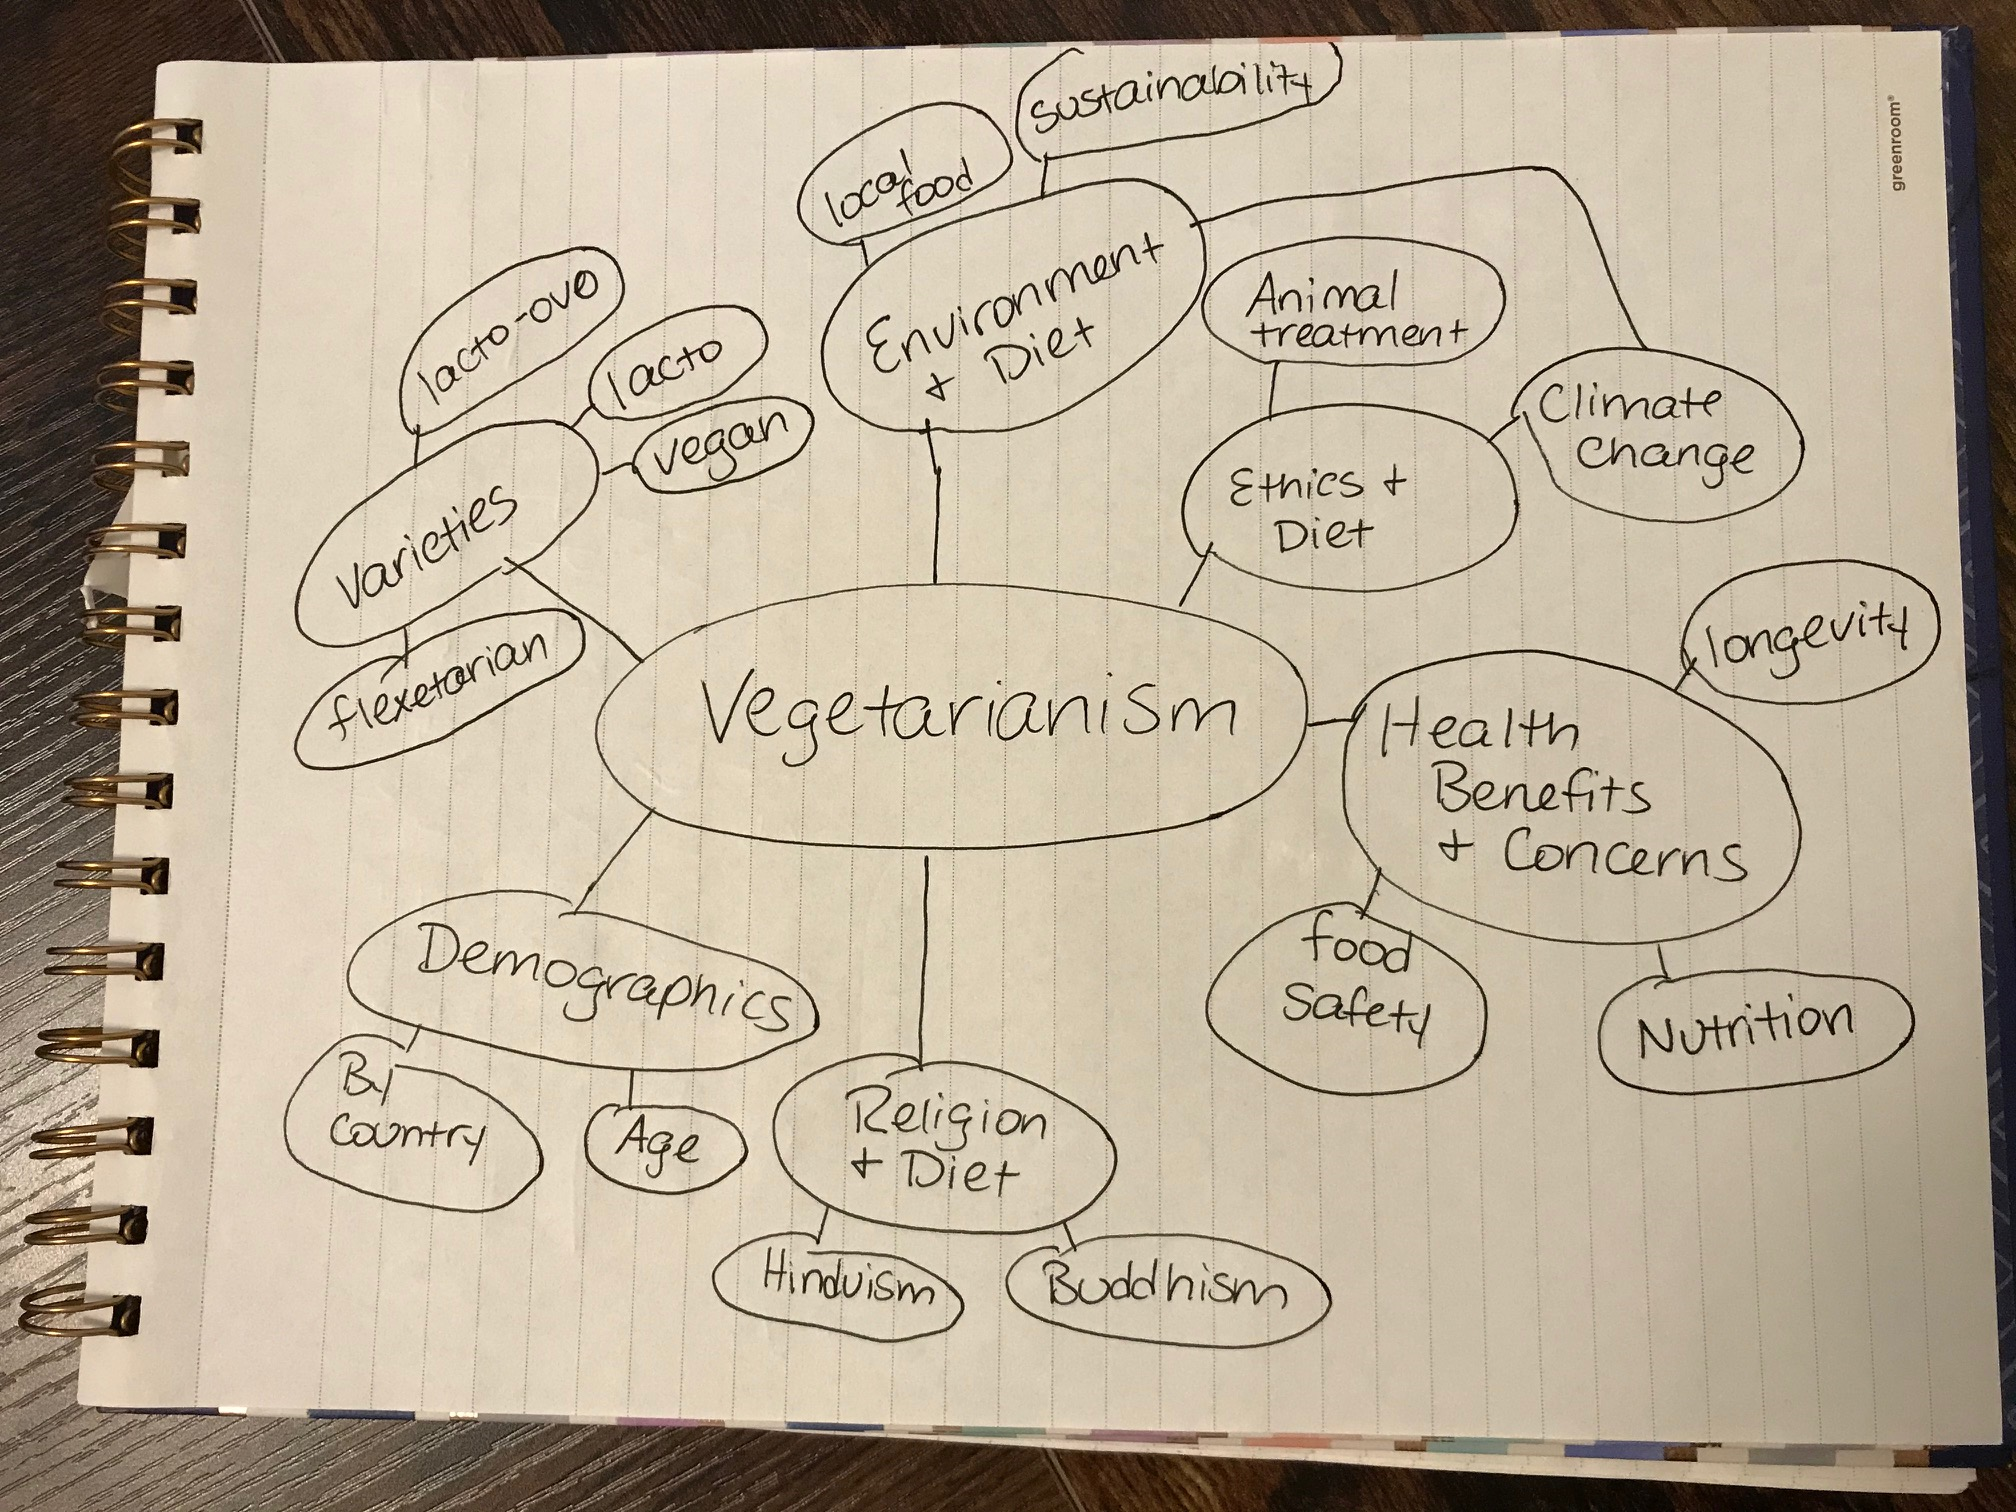 Concept map for vegetarianism. The word vegerarianism is circled in the middle with sub-topics branching off of it.